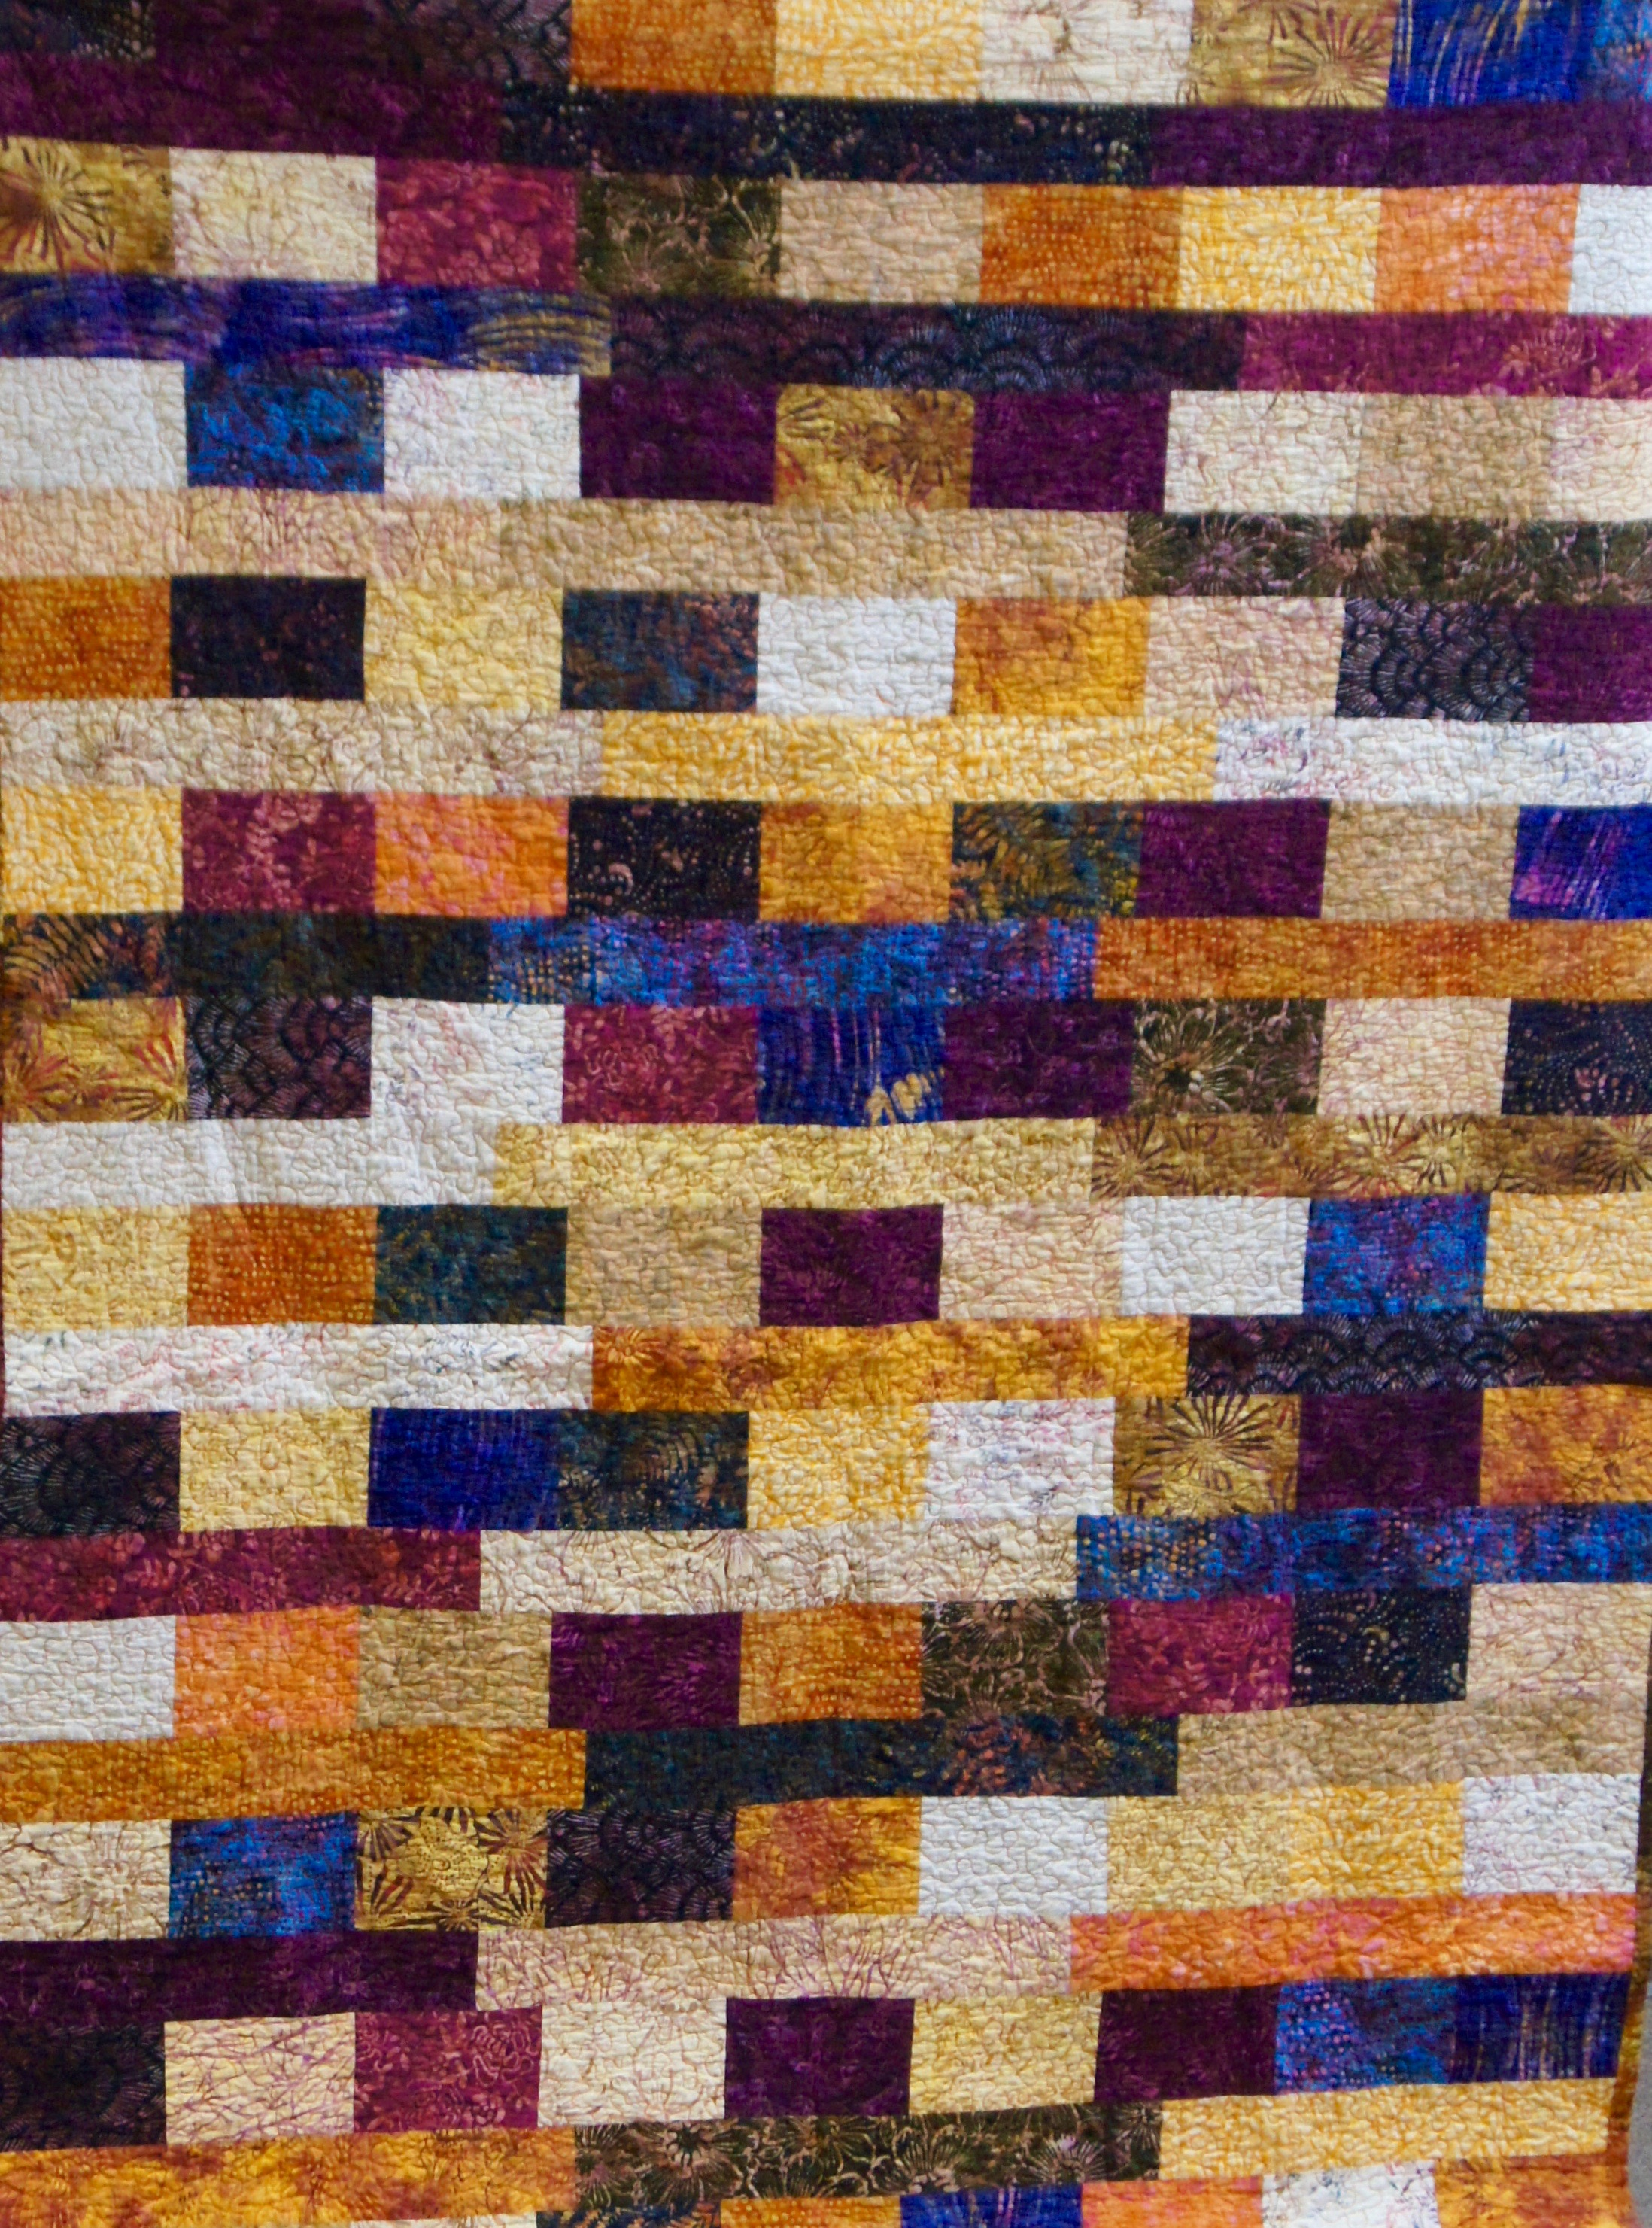 Quilt top by Stephanie